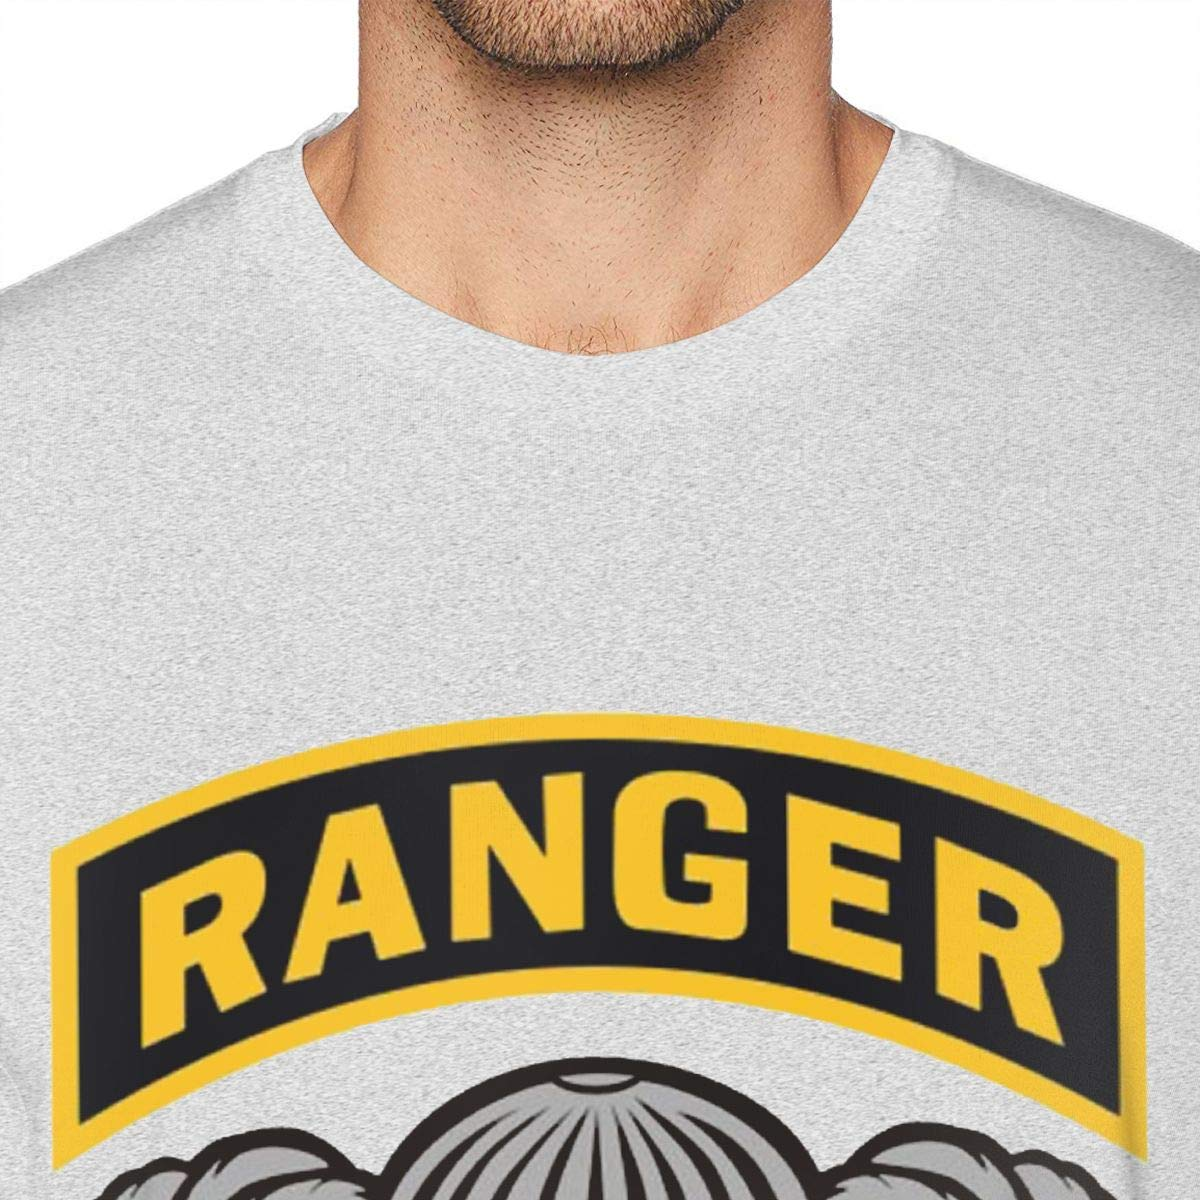 SUMT4men Us Army Ranger Tab Mens Crew Neck Short Sleeve T-Shirt Casual Shirt for Men